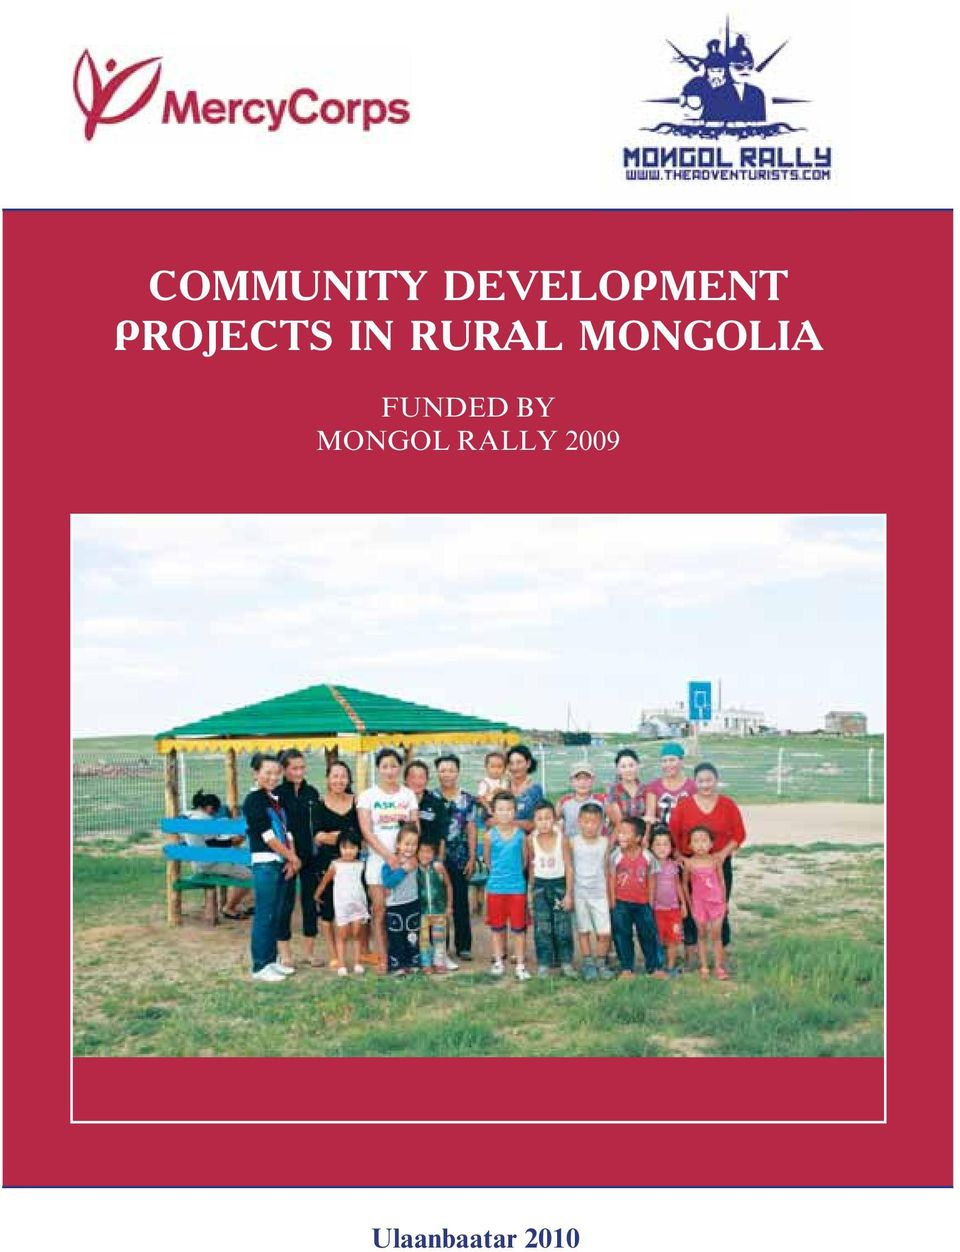 MONGOLIA FUNDED BY